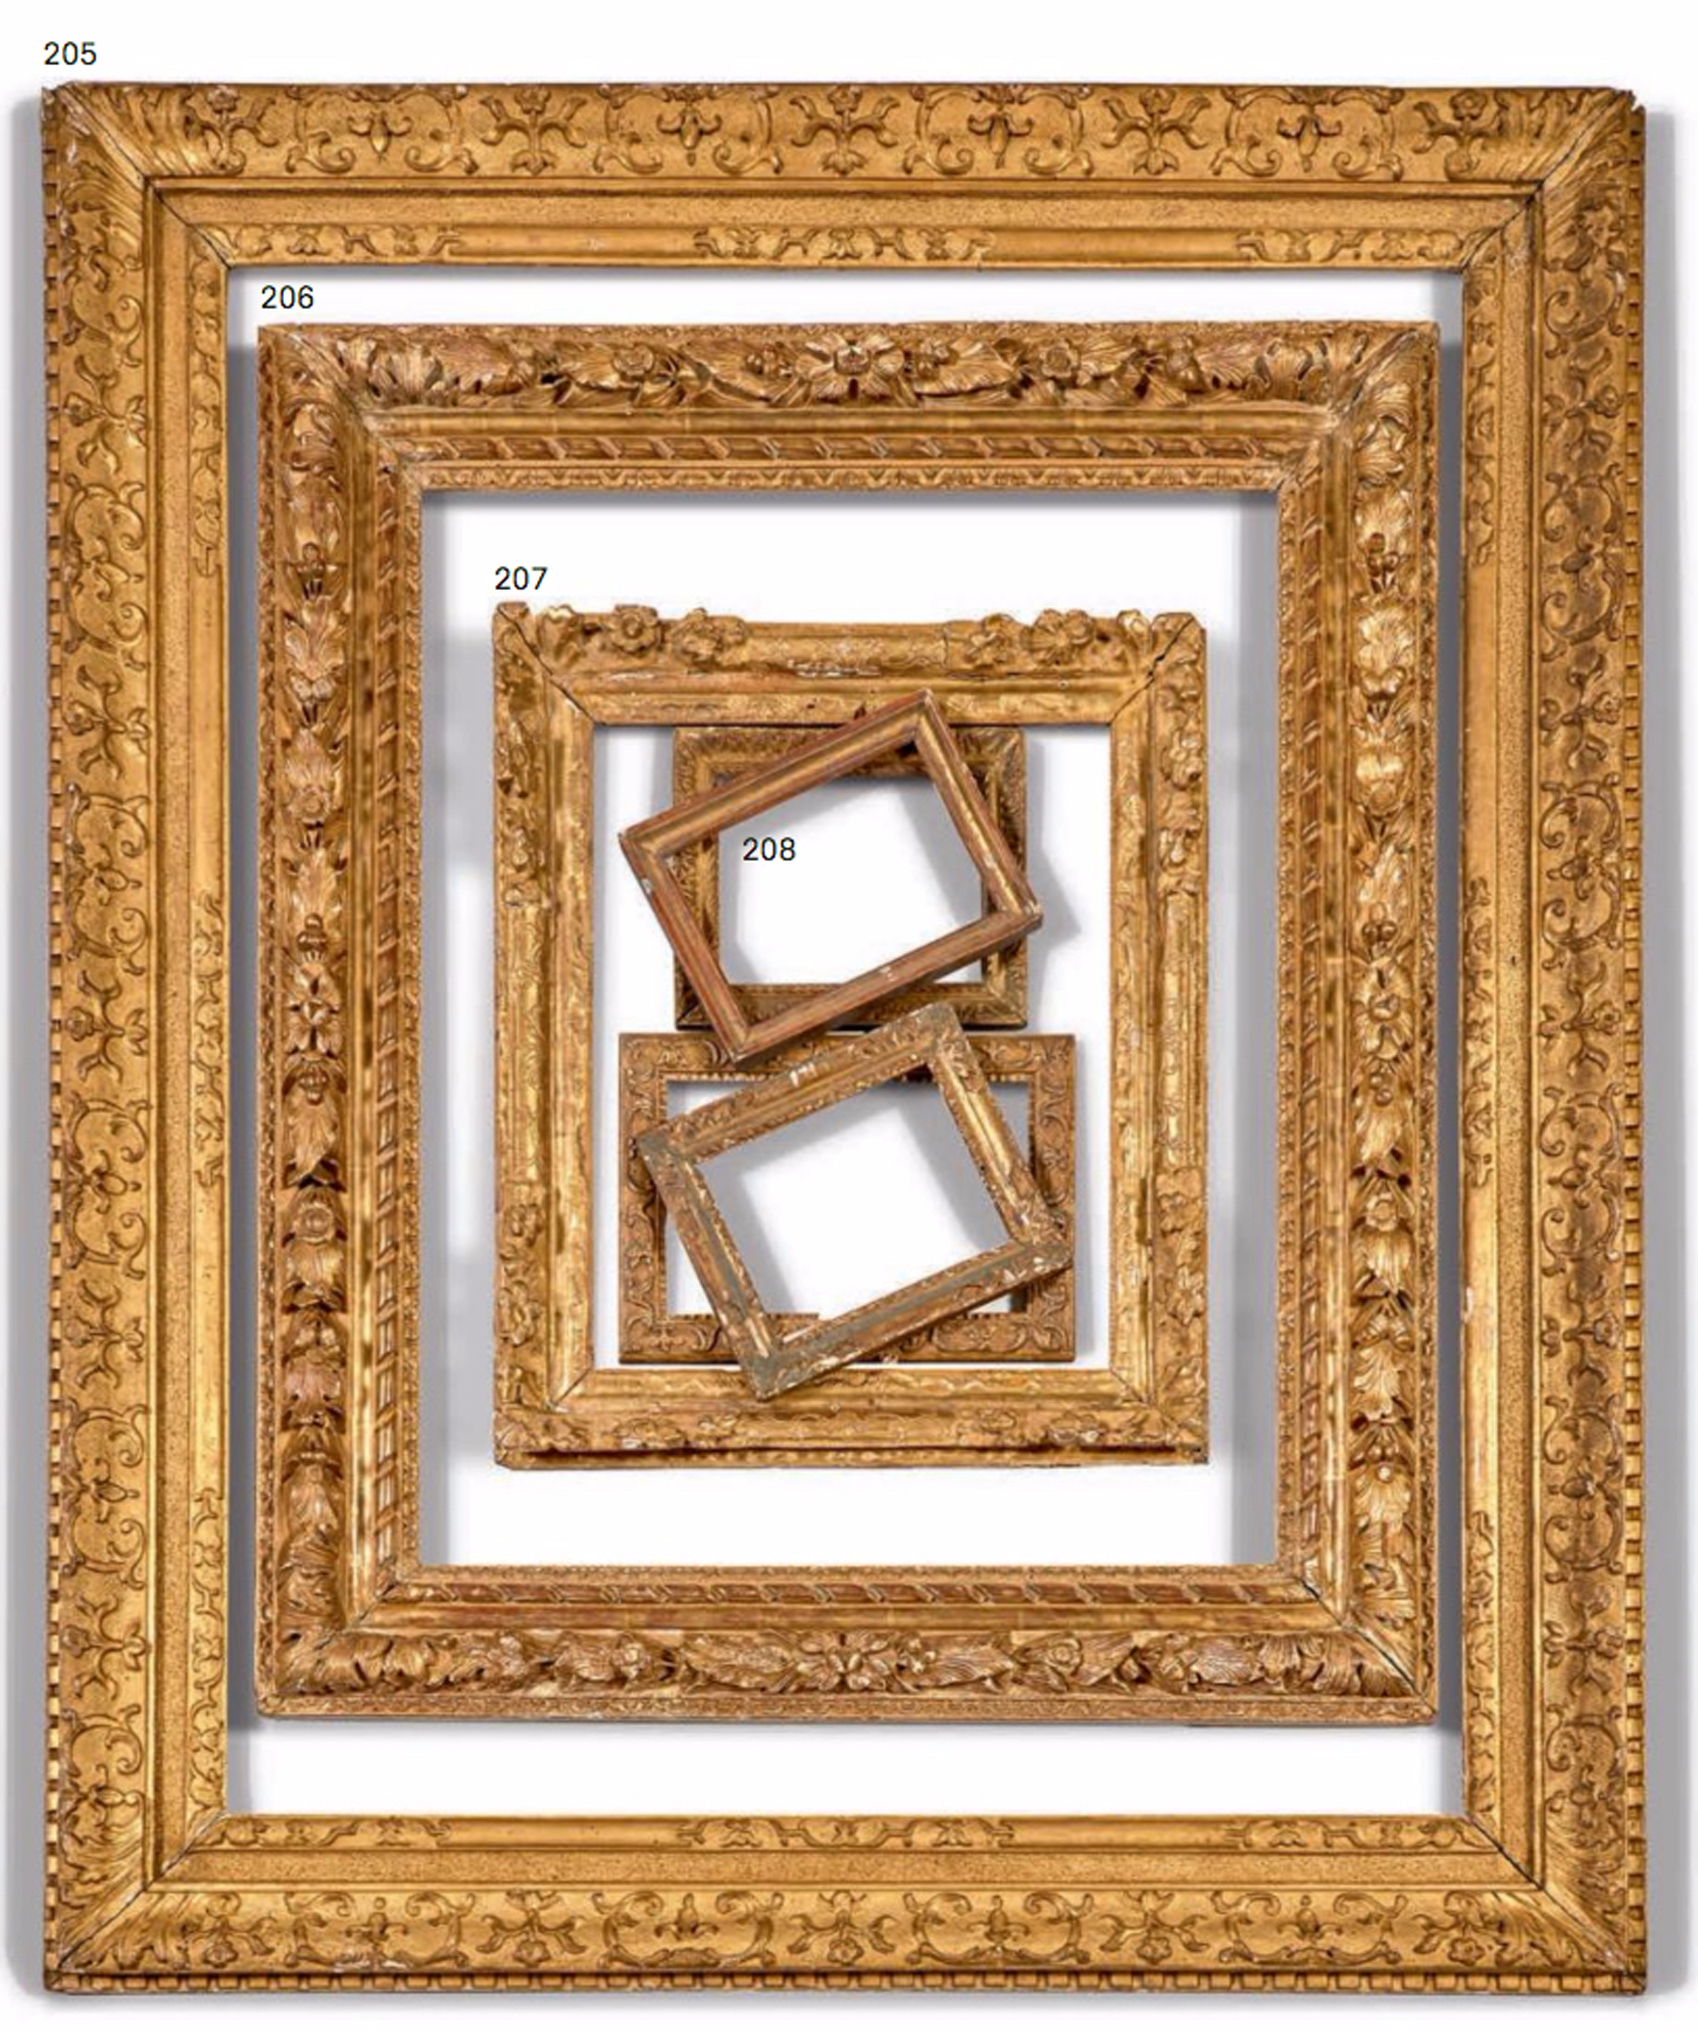 Artcurial: sale of antique frames in Paris 2017 | The Frame Blog